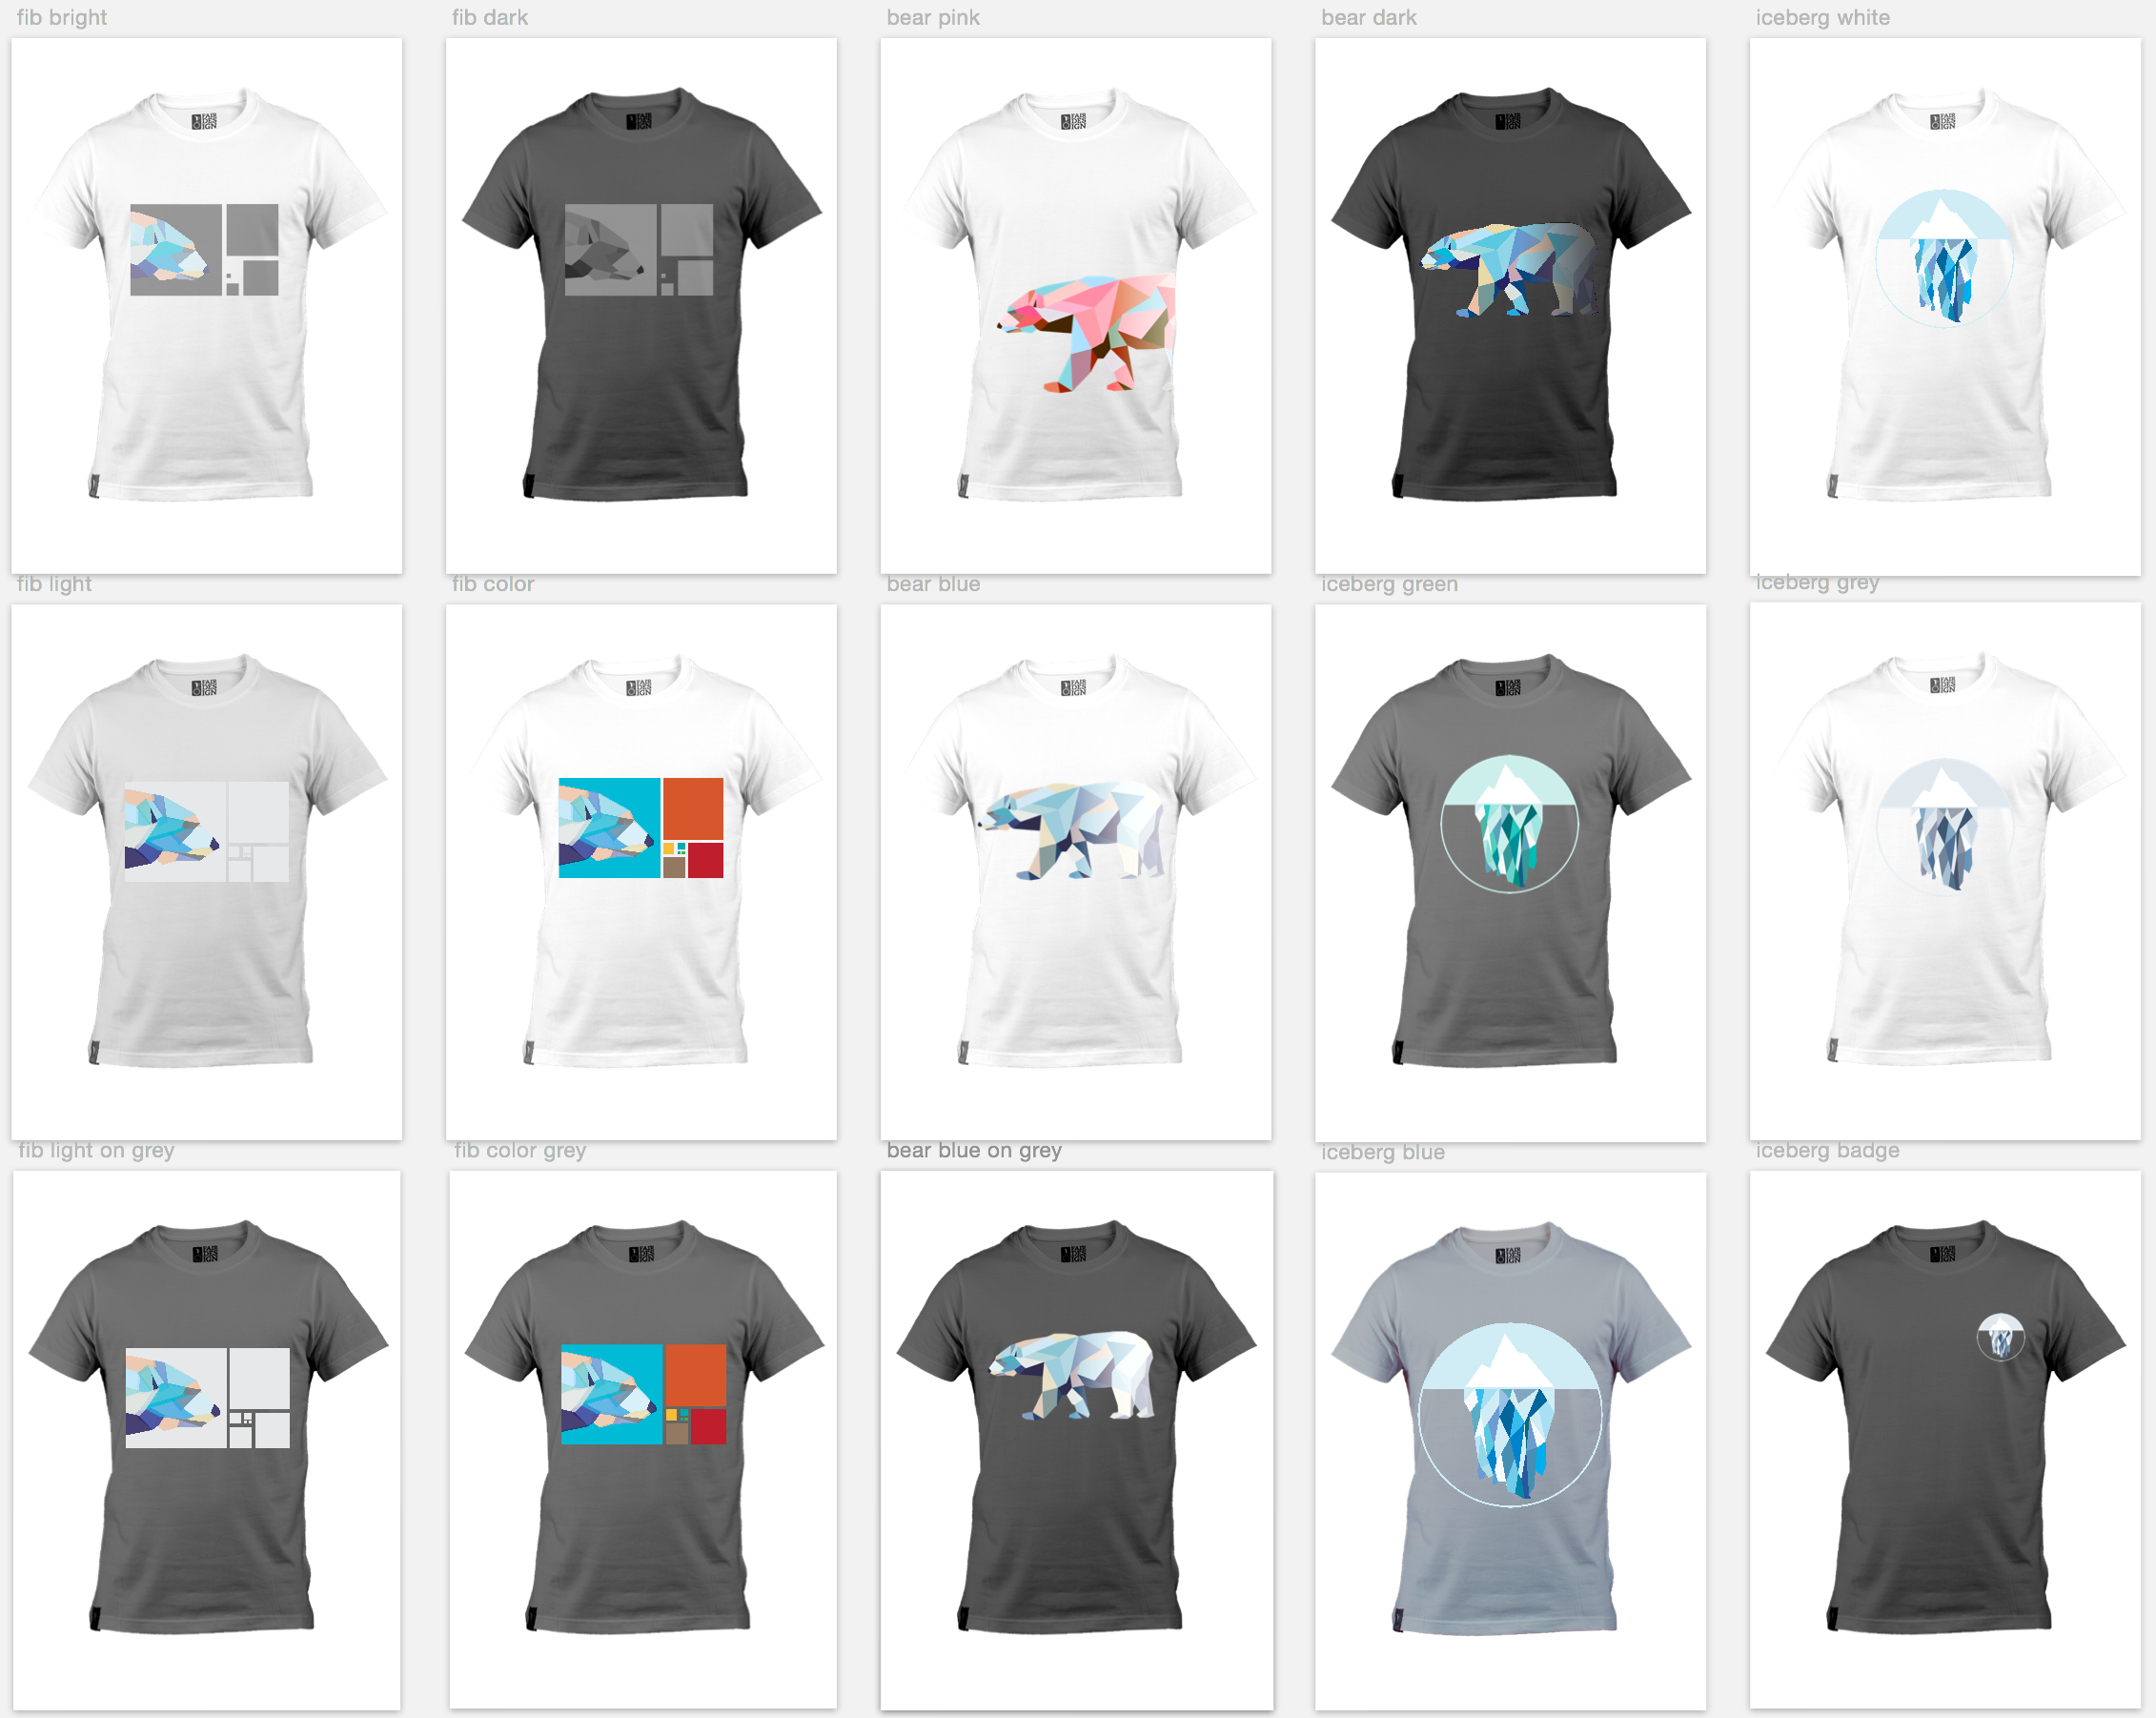 Various graphic designs for t-shirts and other company swag